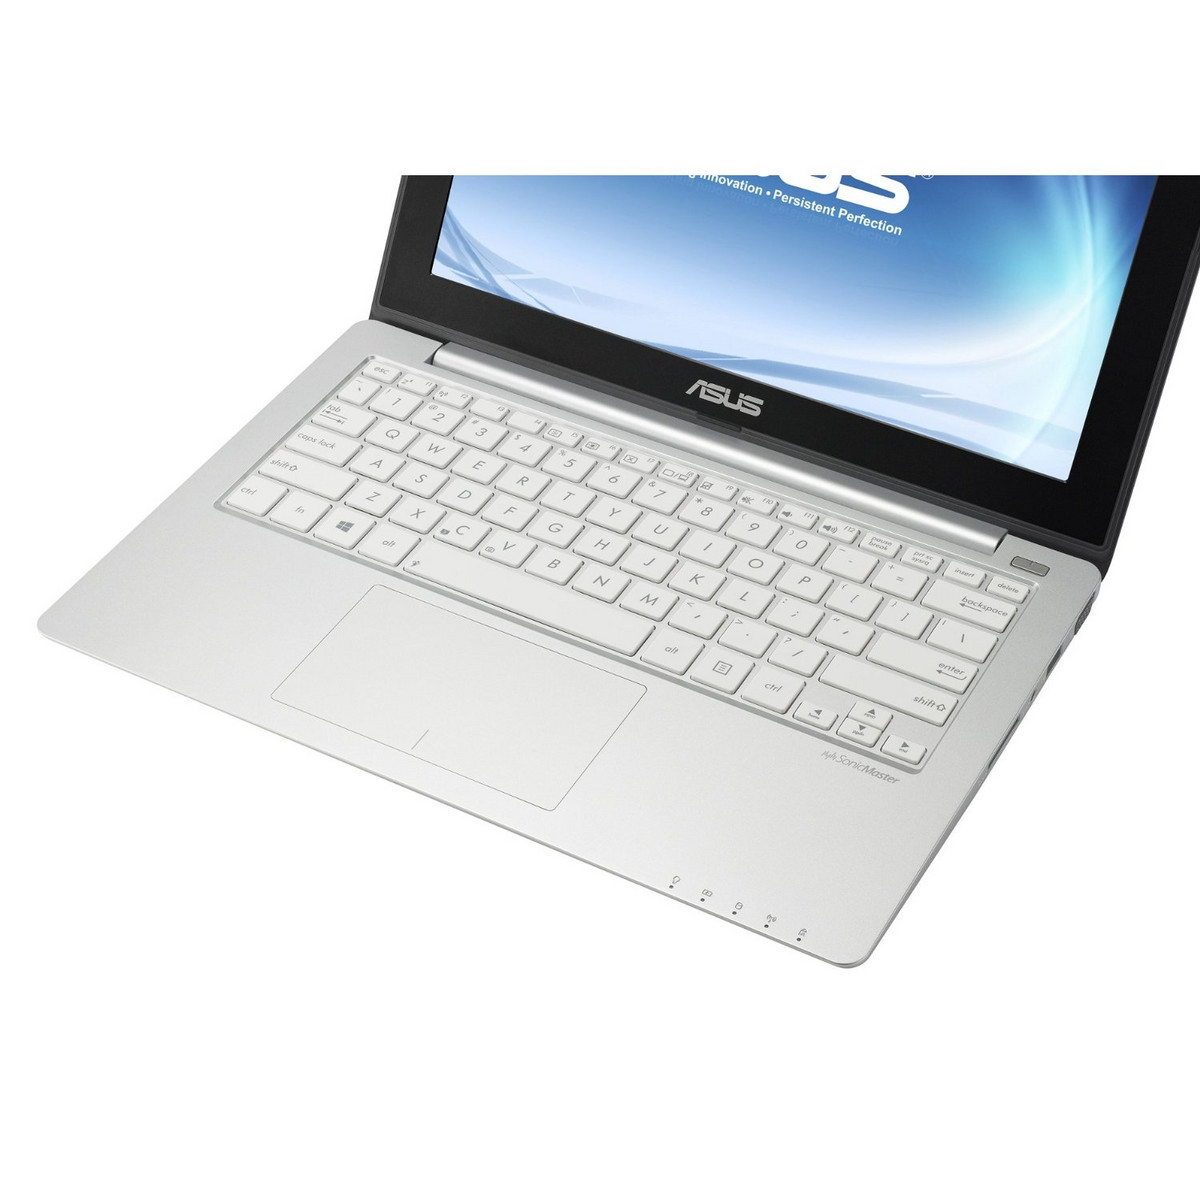 ASUS F201E DRIVERS DOWNLOAD FREE